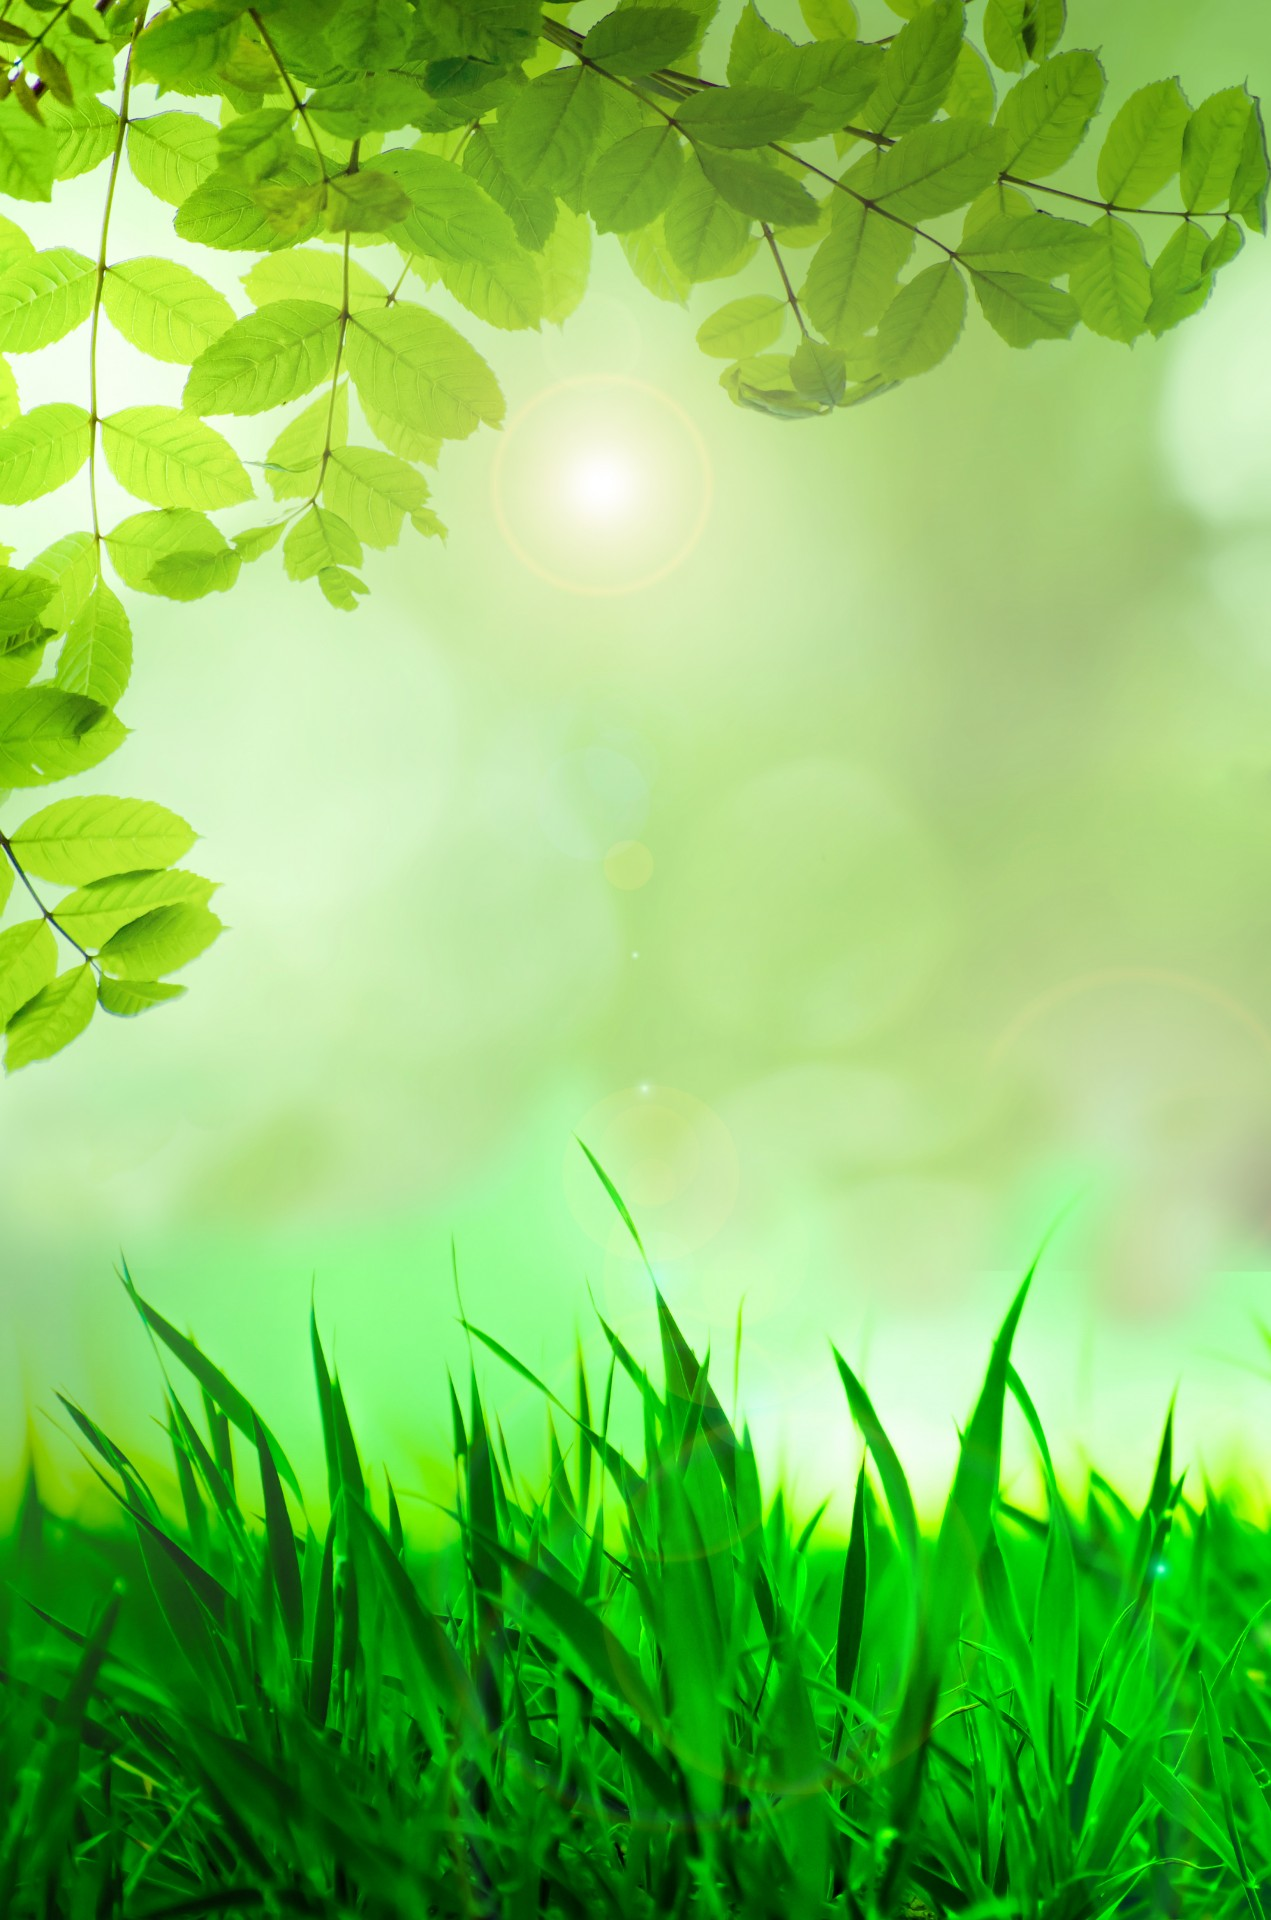 Natural Green Background Free Stock Photo - Public Domain Pictures